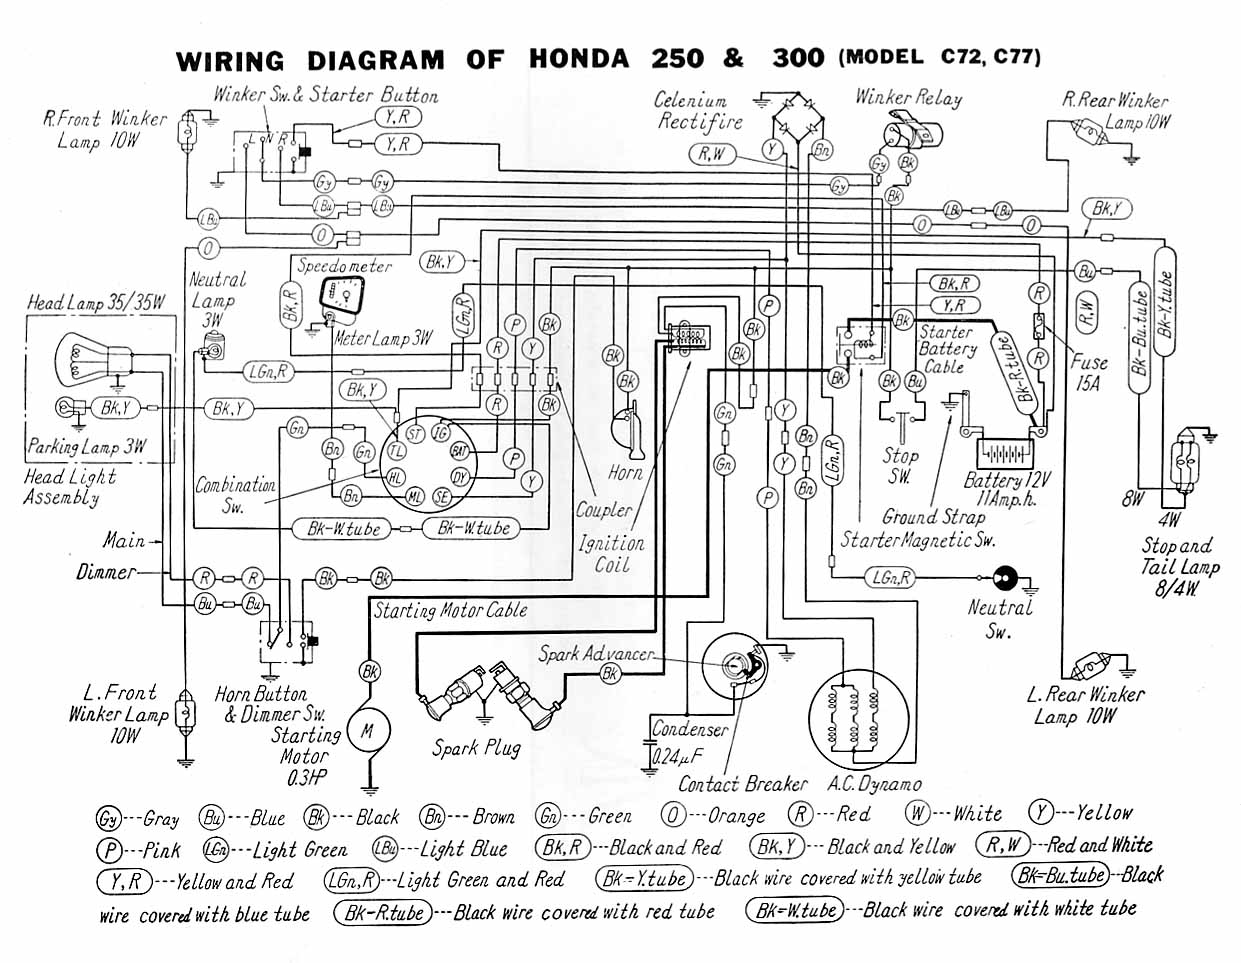 1983 Kawasaki Kdx Dirt Bike Ignition Diagram Wiring Diagrams Dual Sport Motorcycle Rh Oregonmotorcycleparts Com Honda Cr80 Bikes Ktm 125